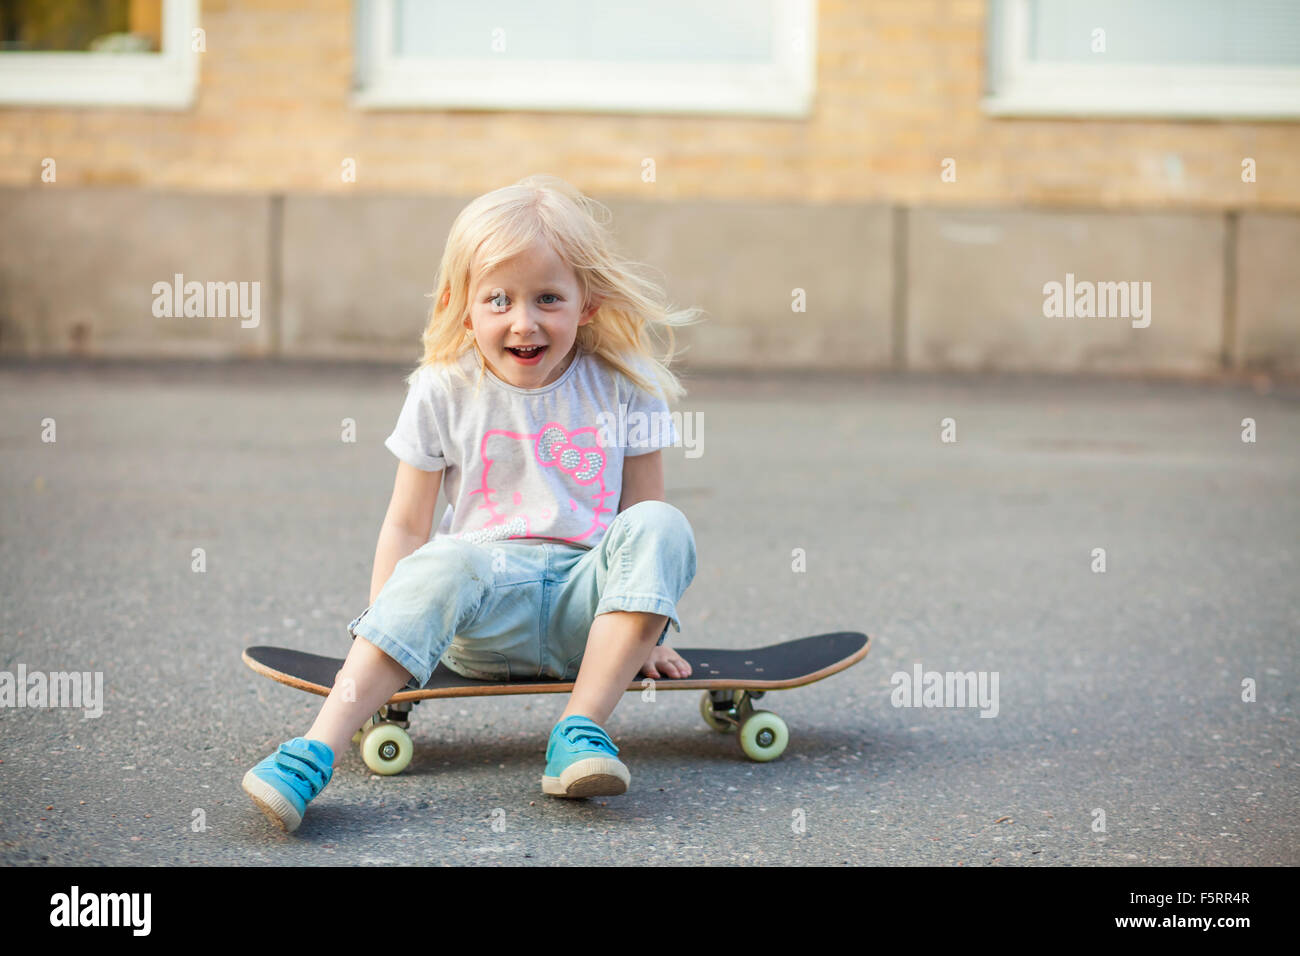 La Suède, Vastergotland, Lerum, Girl (6-7) sitting on skateboard Photo Stock